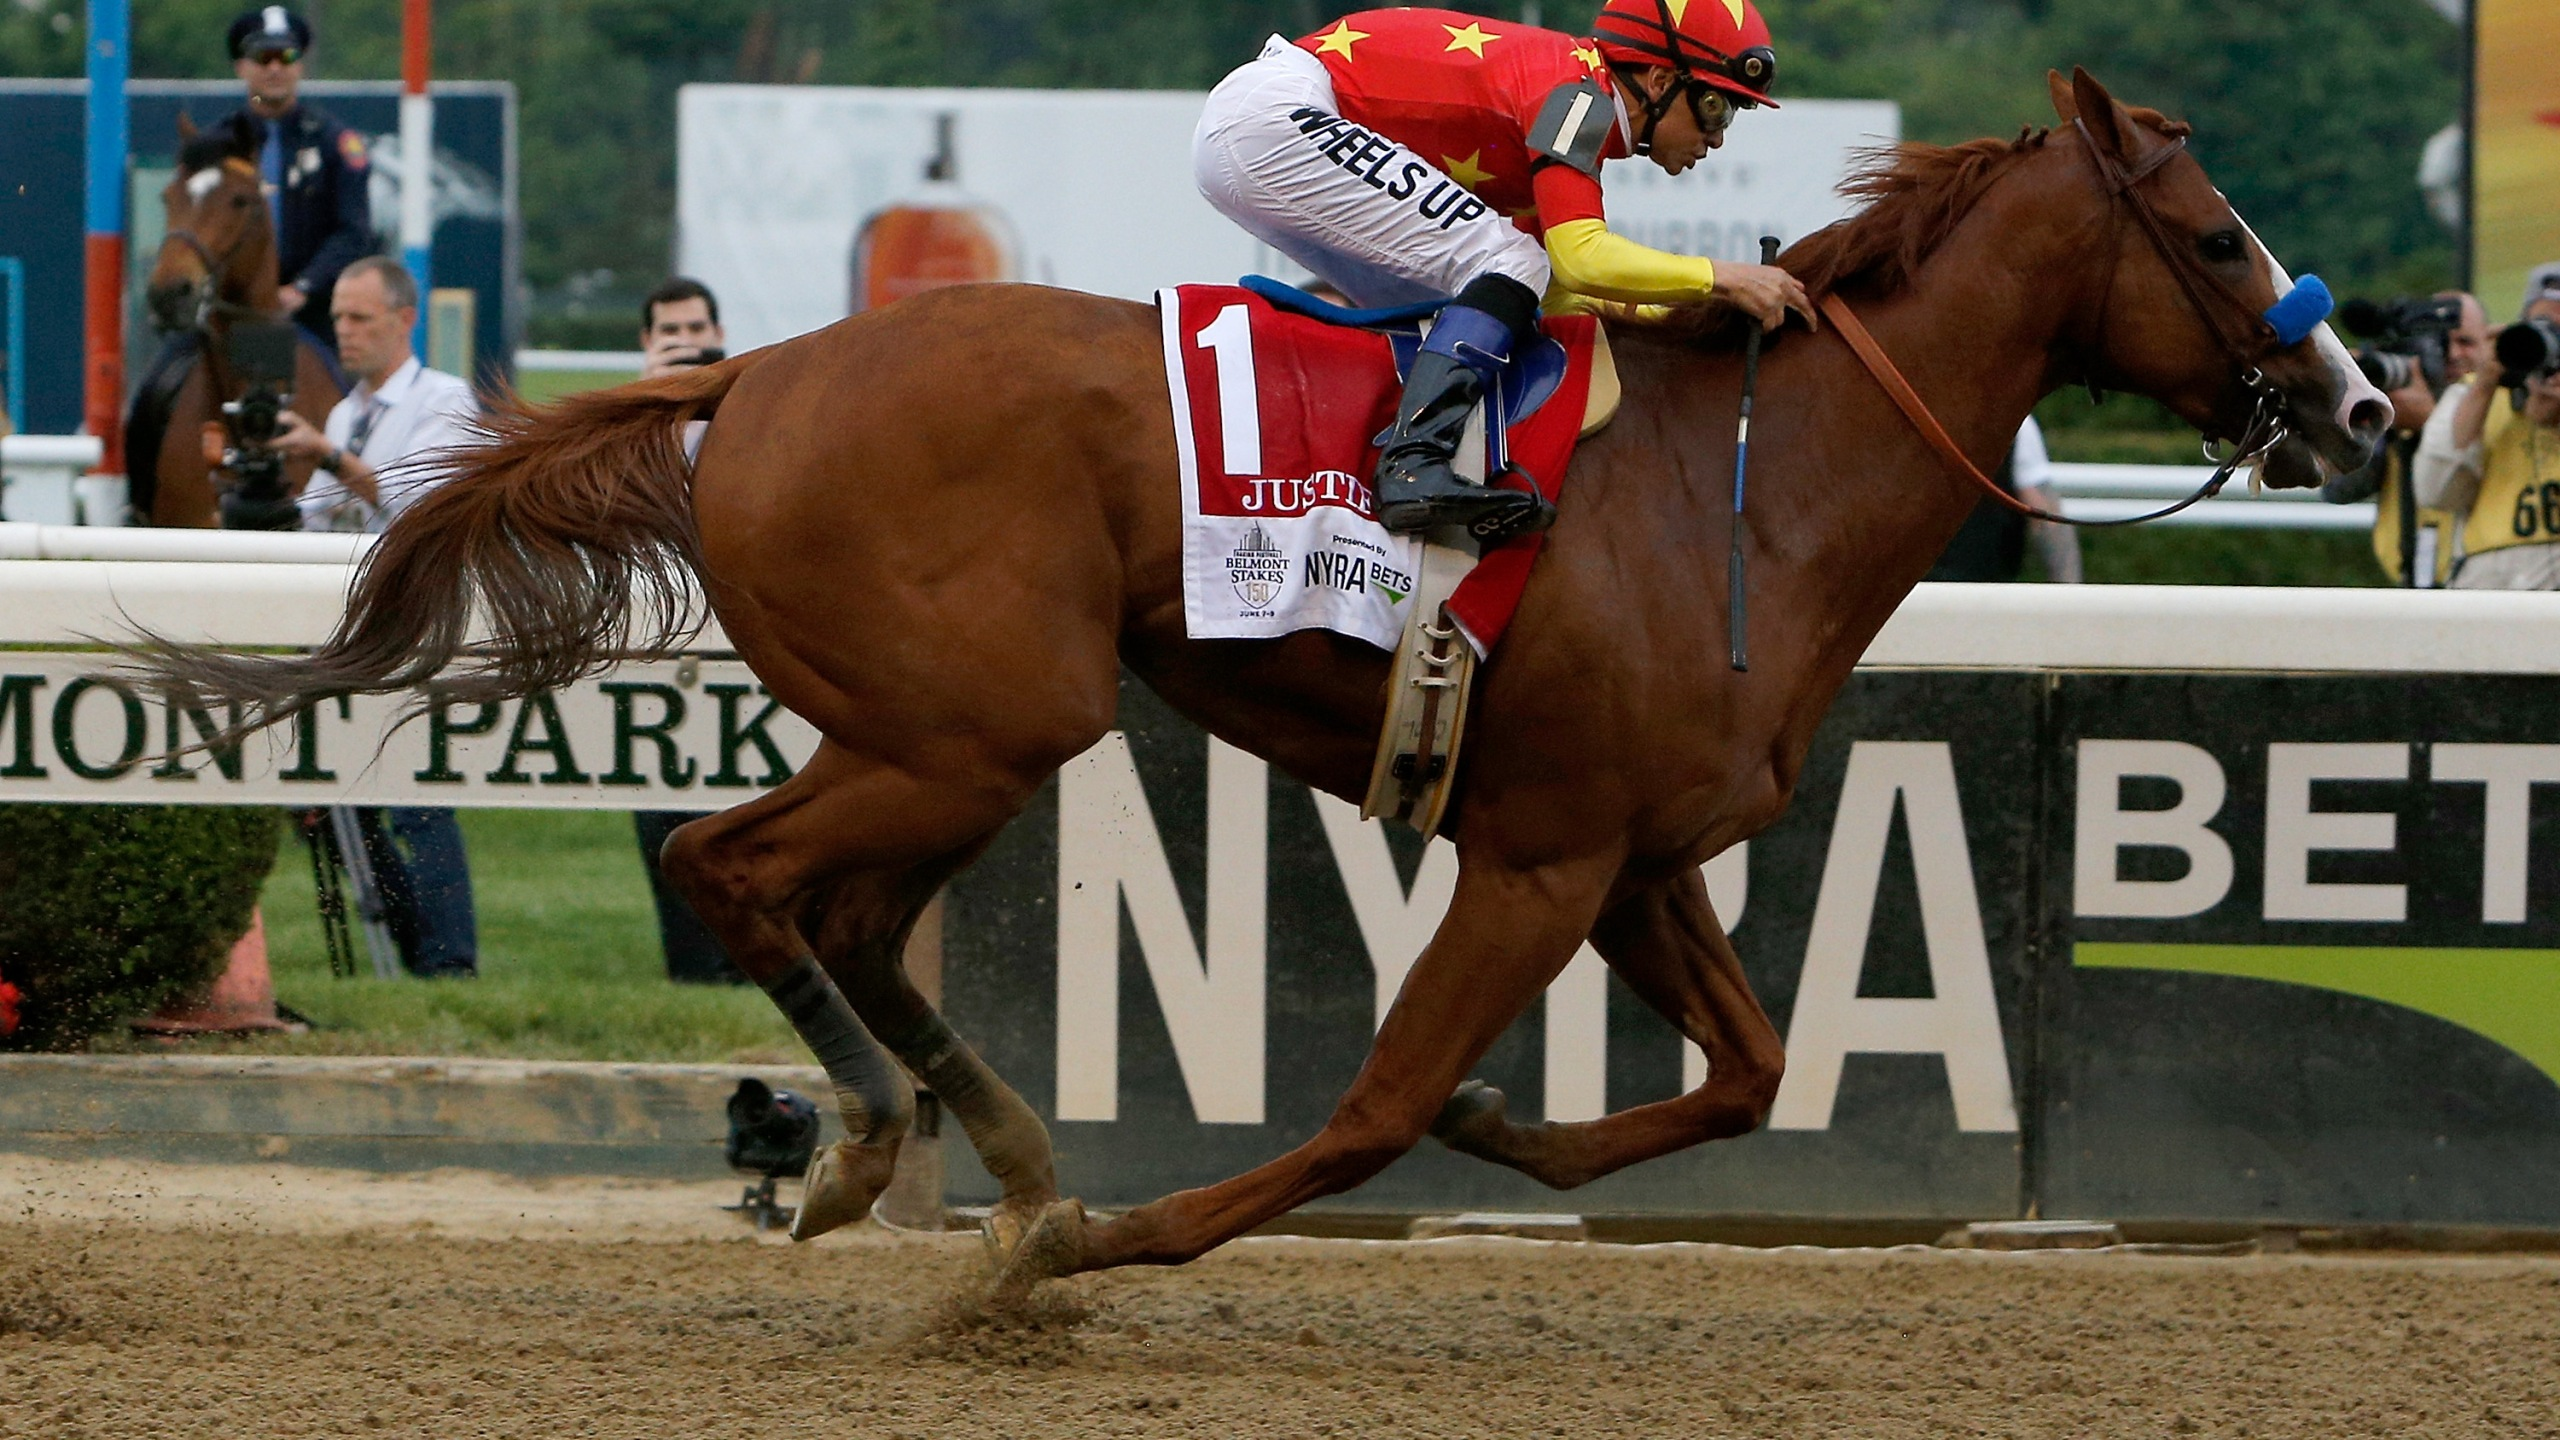 Justify #1, ridden by jockey Mike Smith, crosses the finish line to win the 150th running of the Belmont Stakes at Belmont Park on June 9, 2018, in Elmont, New York. (Michael Reaves/Getty Images)